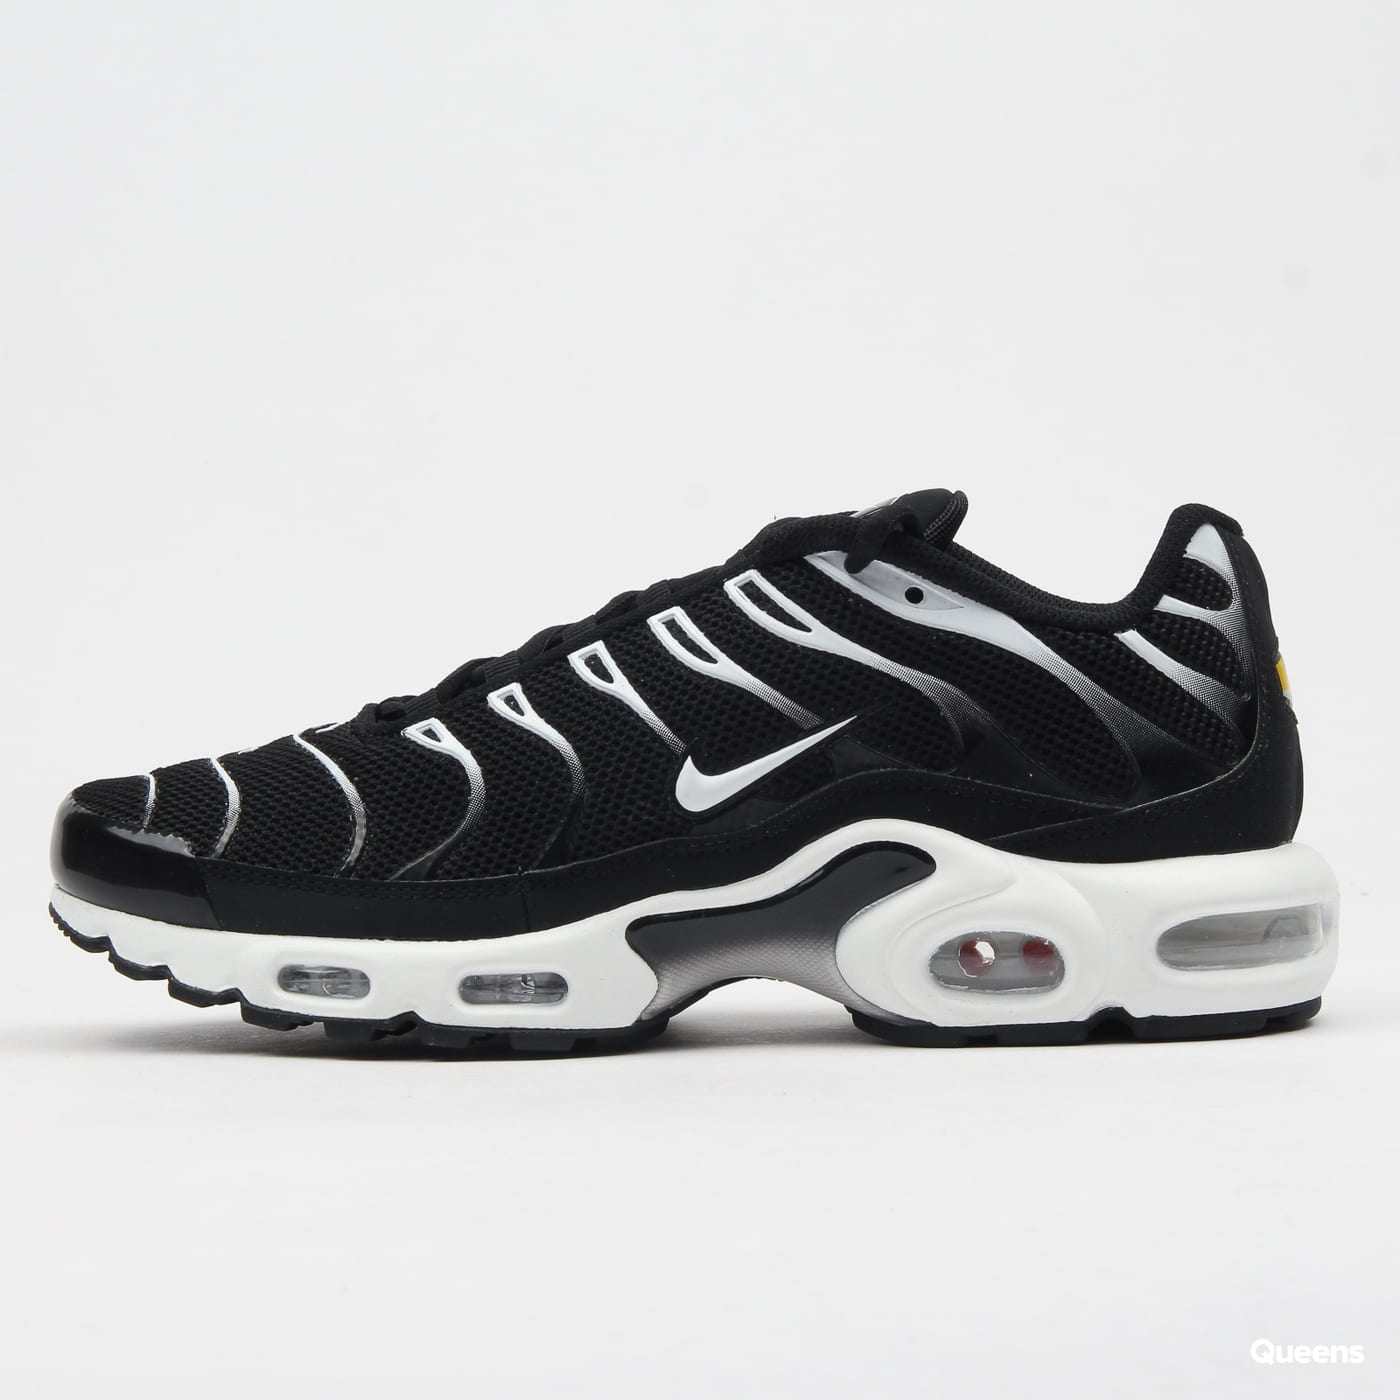 Nike Air Max Plus black / white - black